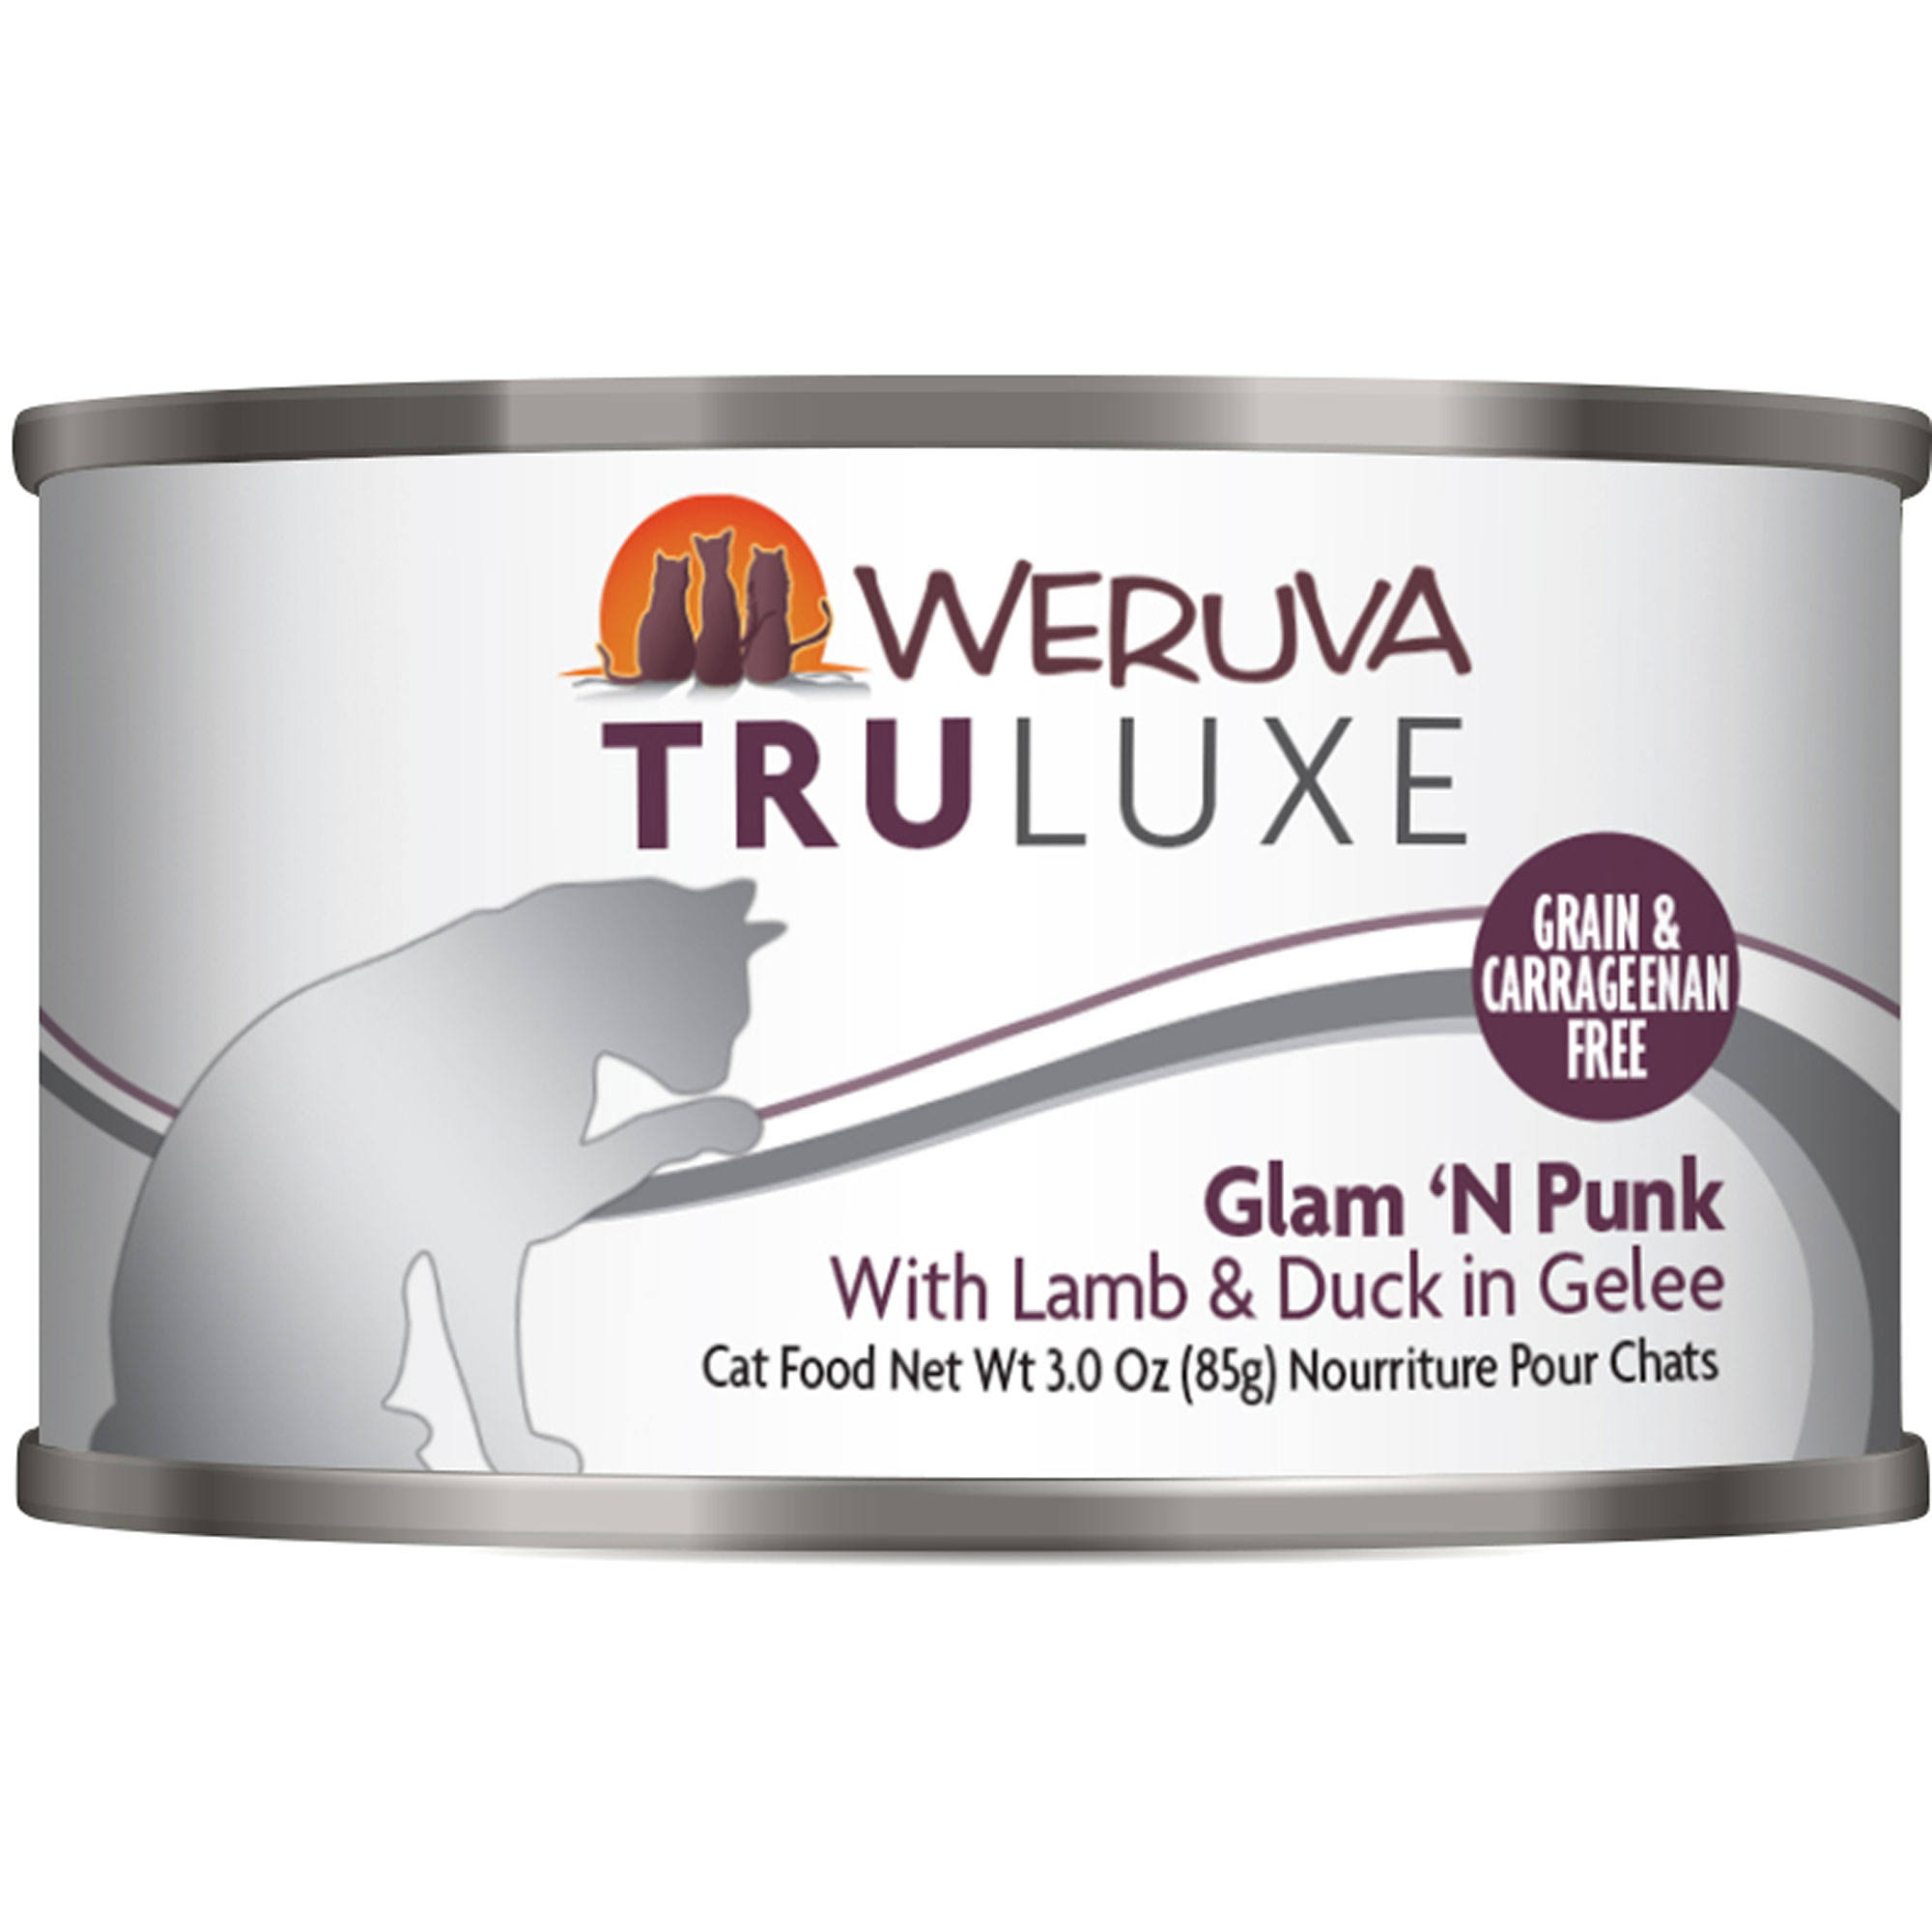 Weruva Grain Free Truluxe Canned Cat Food - Glam 'N Punk, Adult